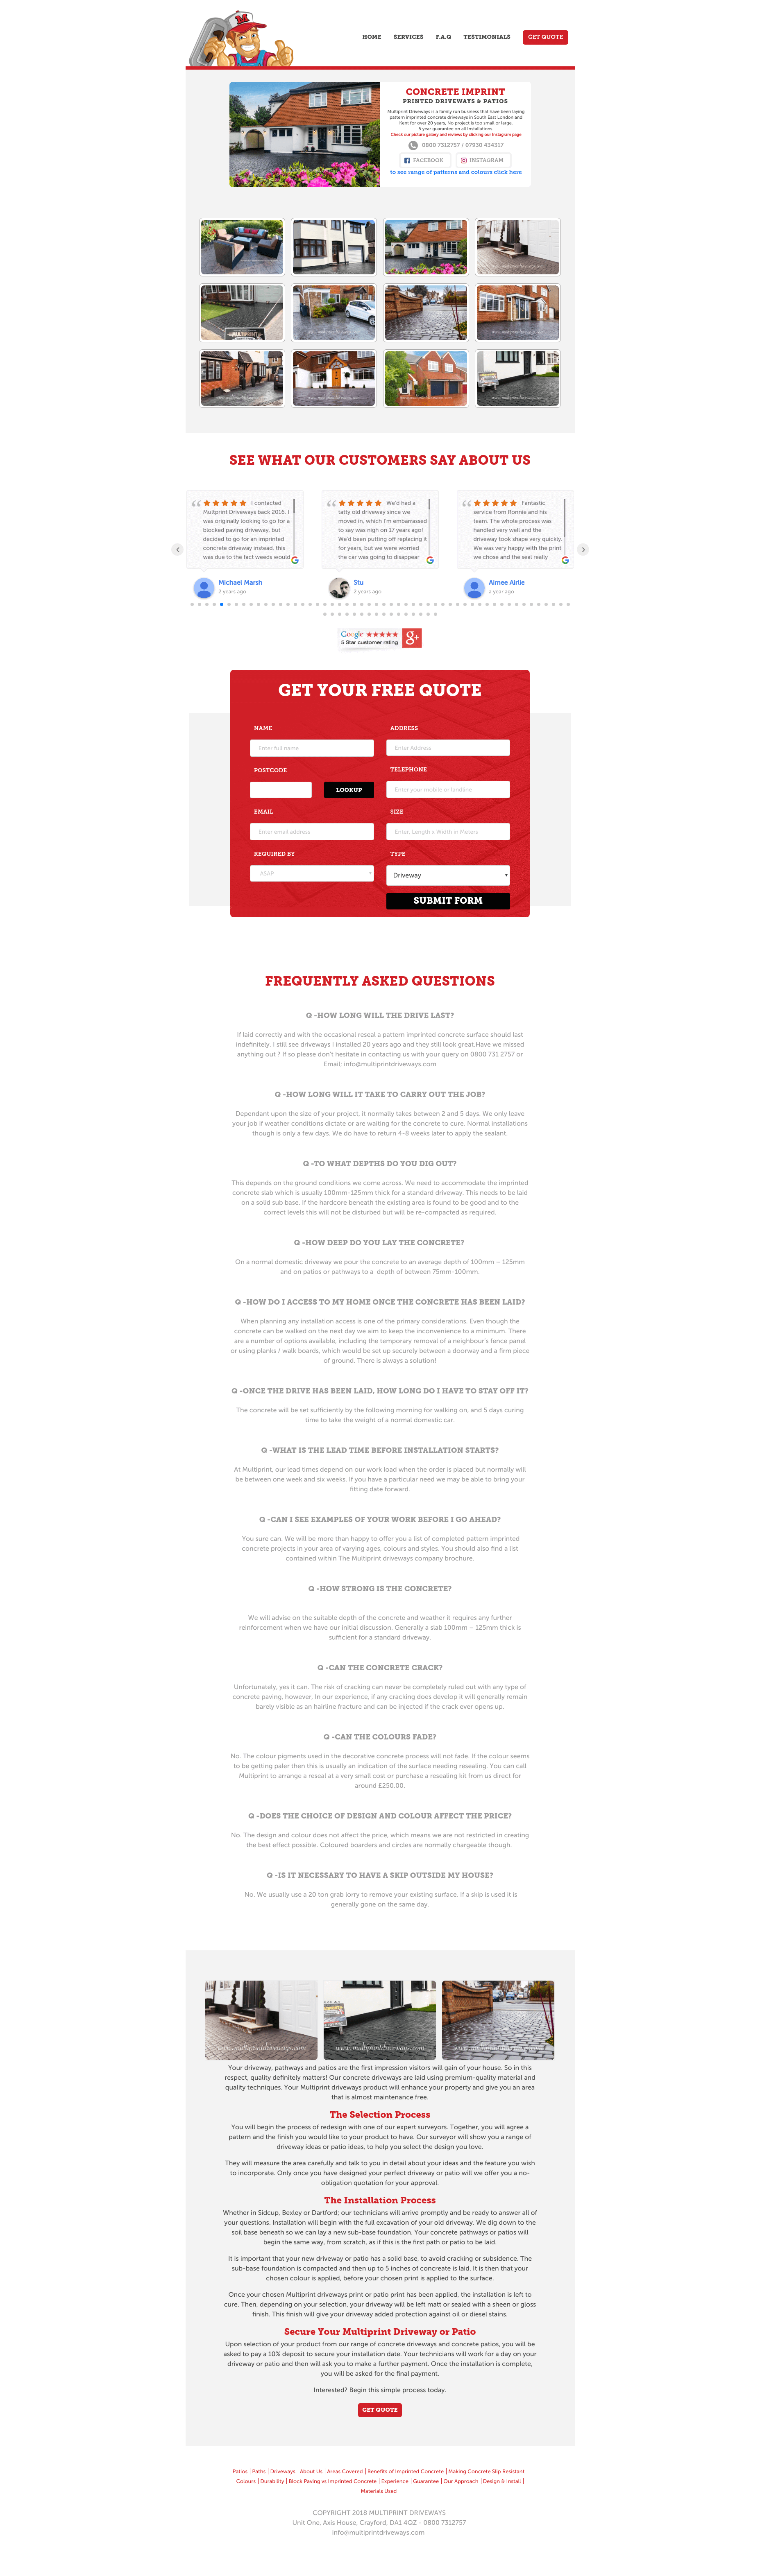 multiprint-full-page